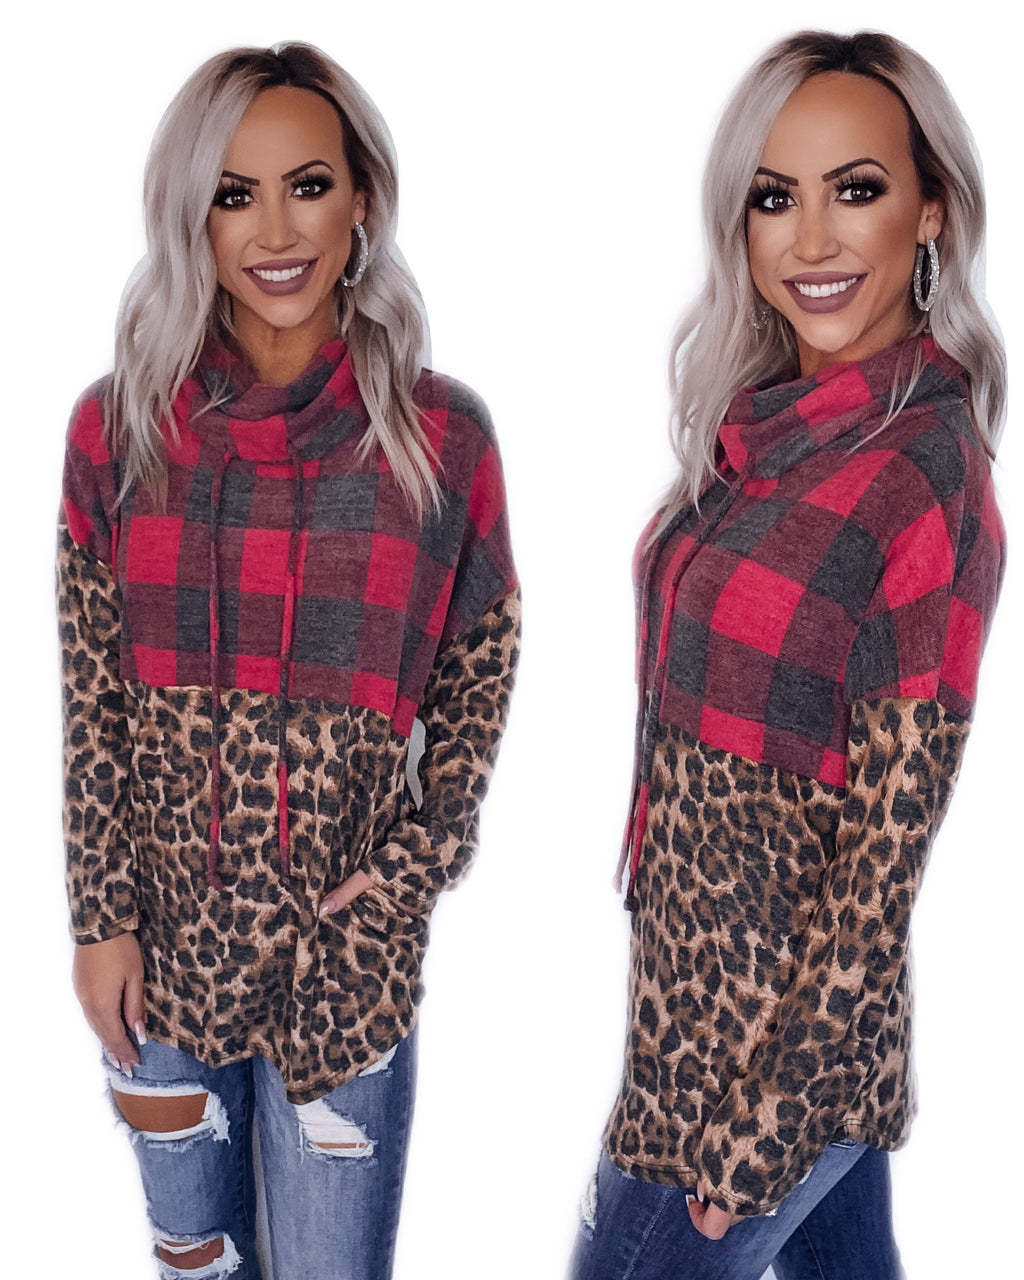 What I Love About Winter Cowl Neck Top - Buffalo Plaid/Leopard